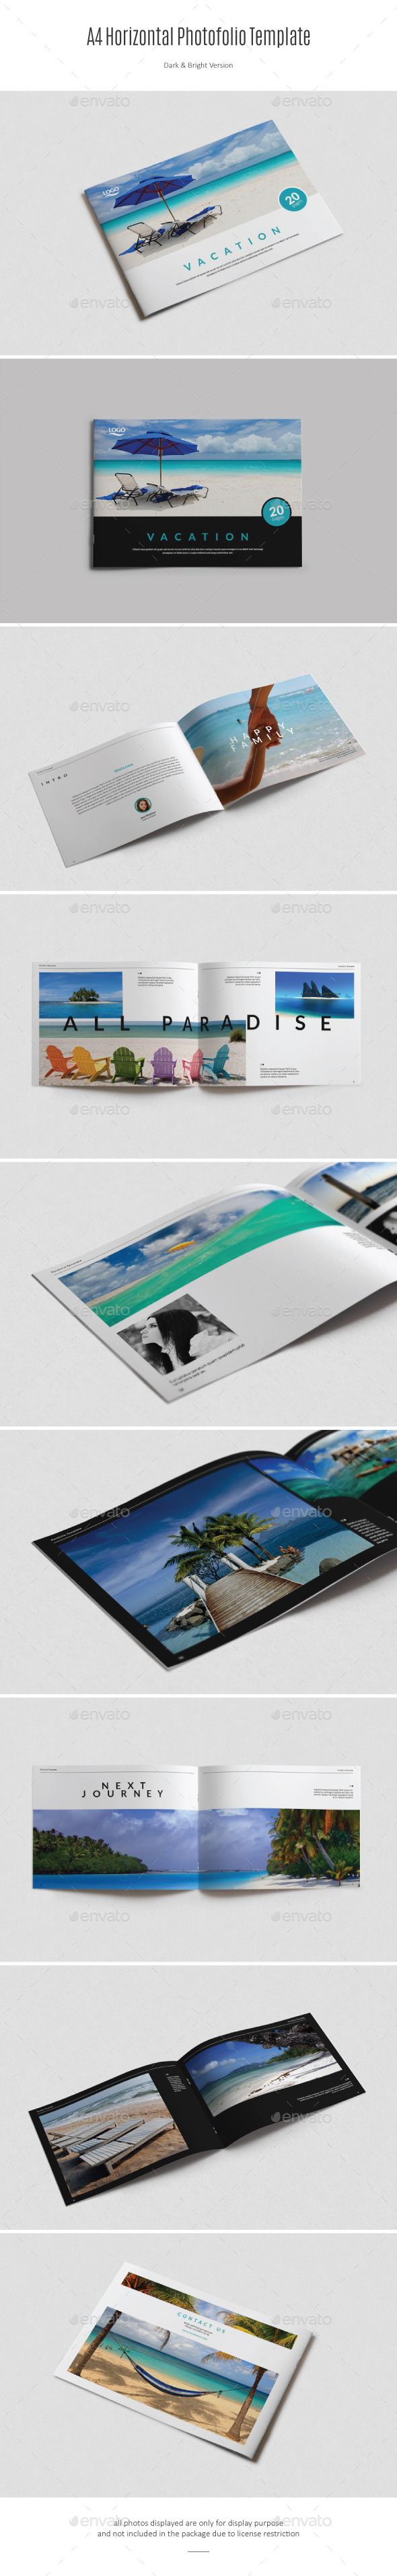 GraphicRiver A4 Horizontal Photofolio 11405465